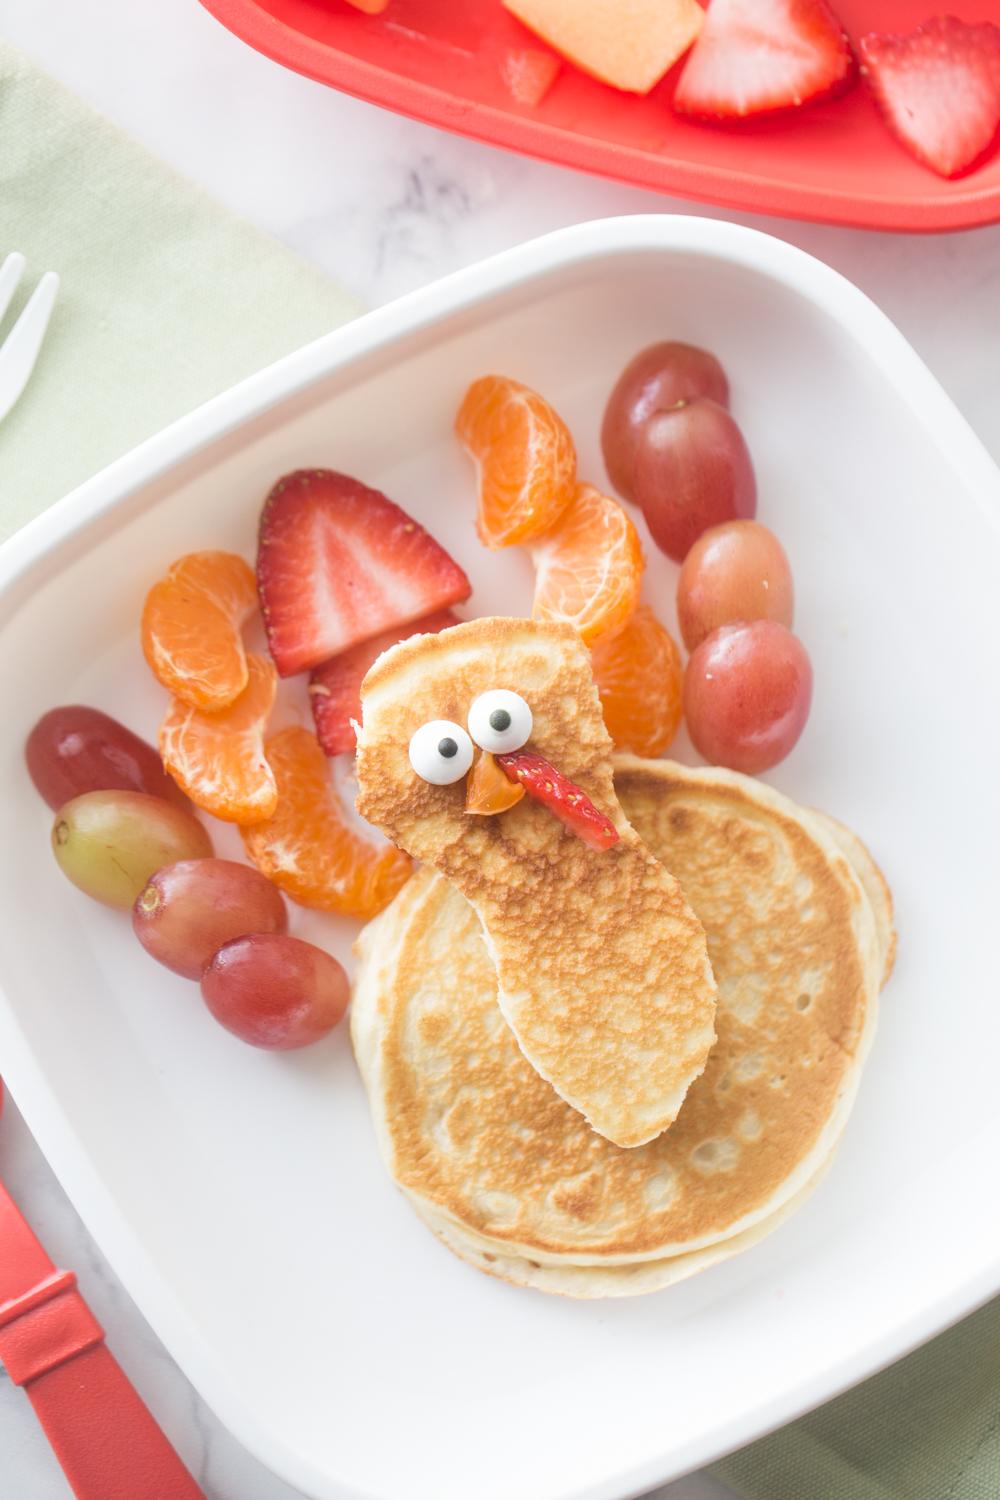 This friendly Turkey Pancake Breakfast is a fun way to celebrate Thanksgiving Day!